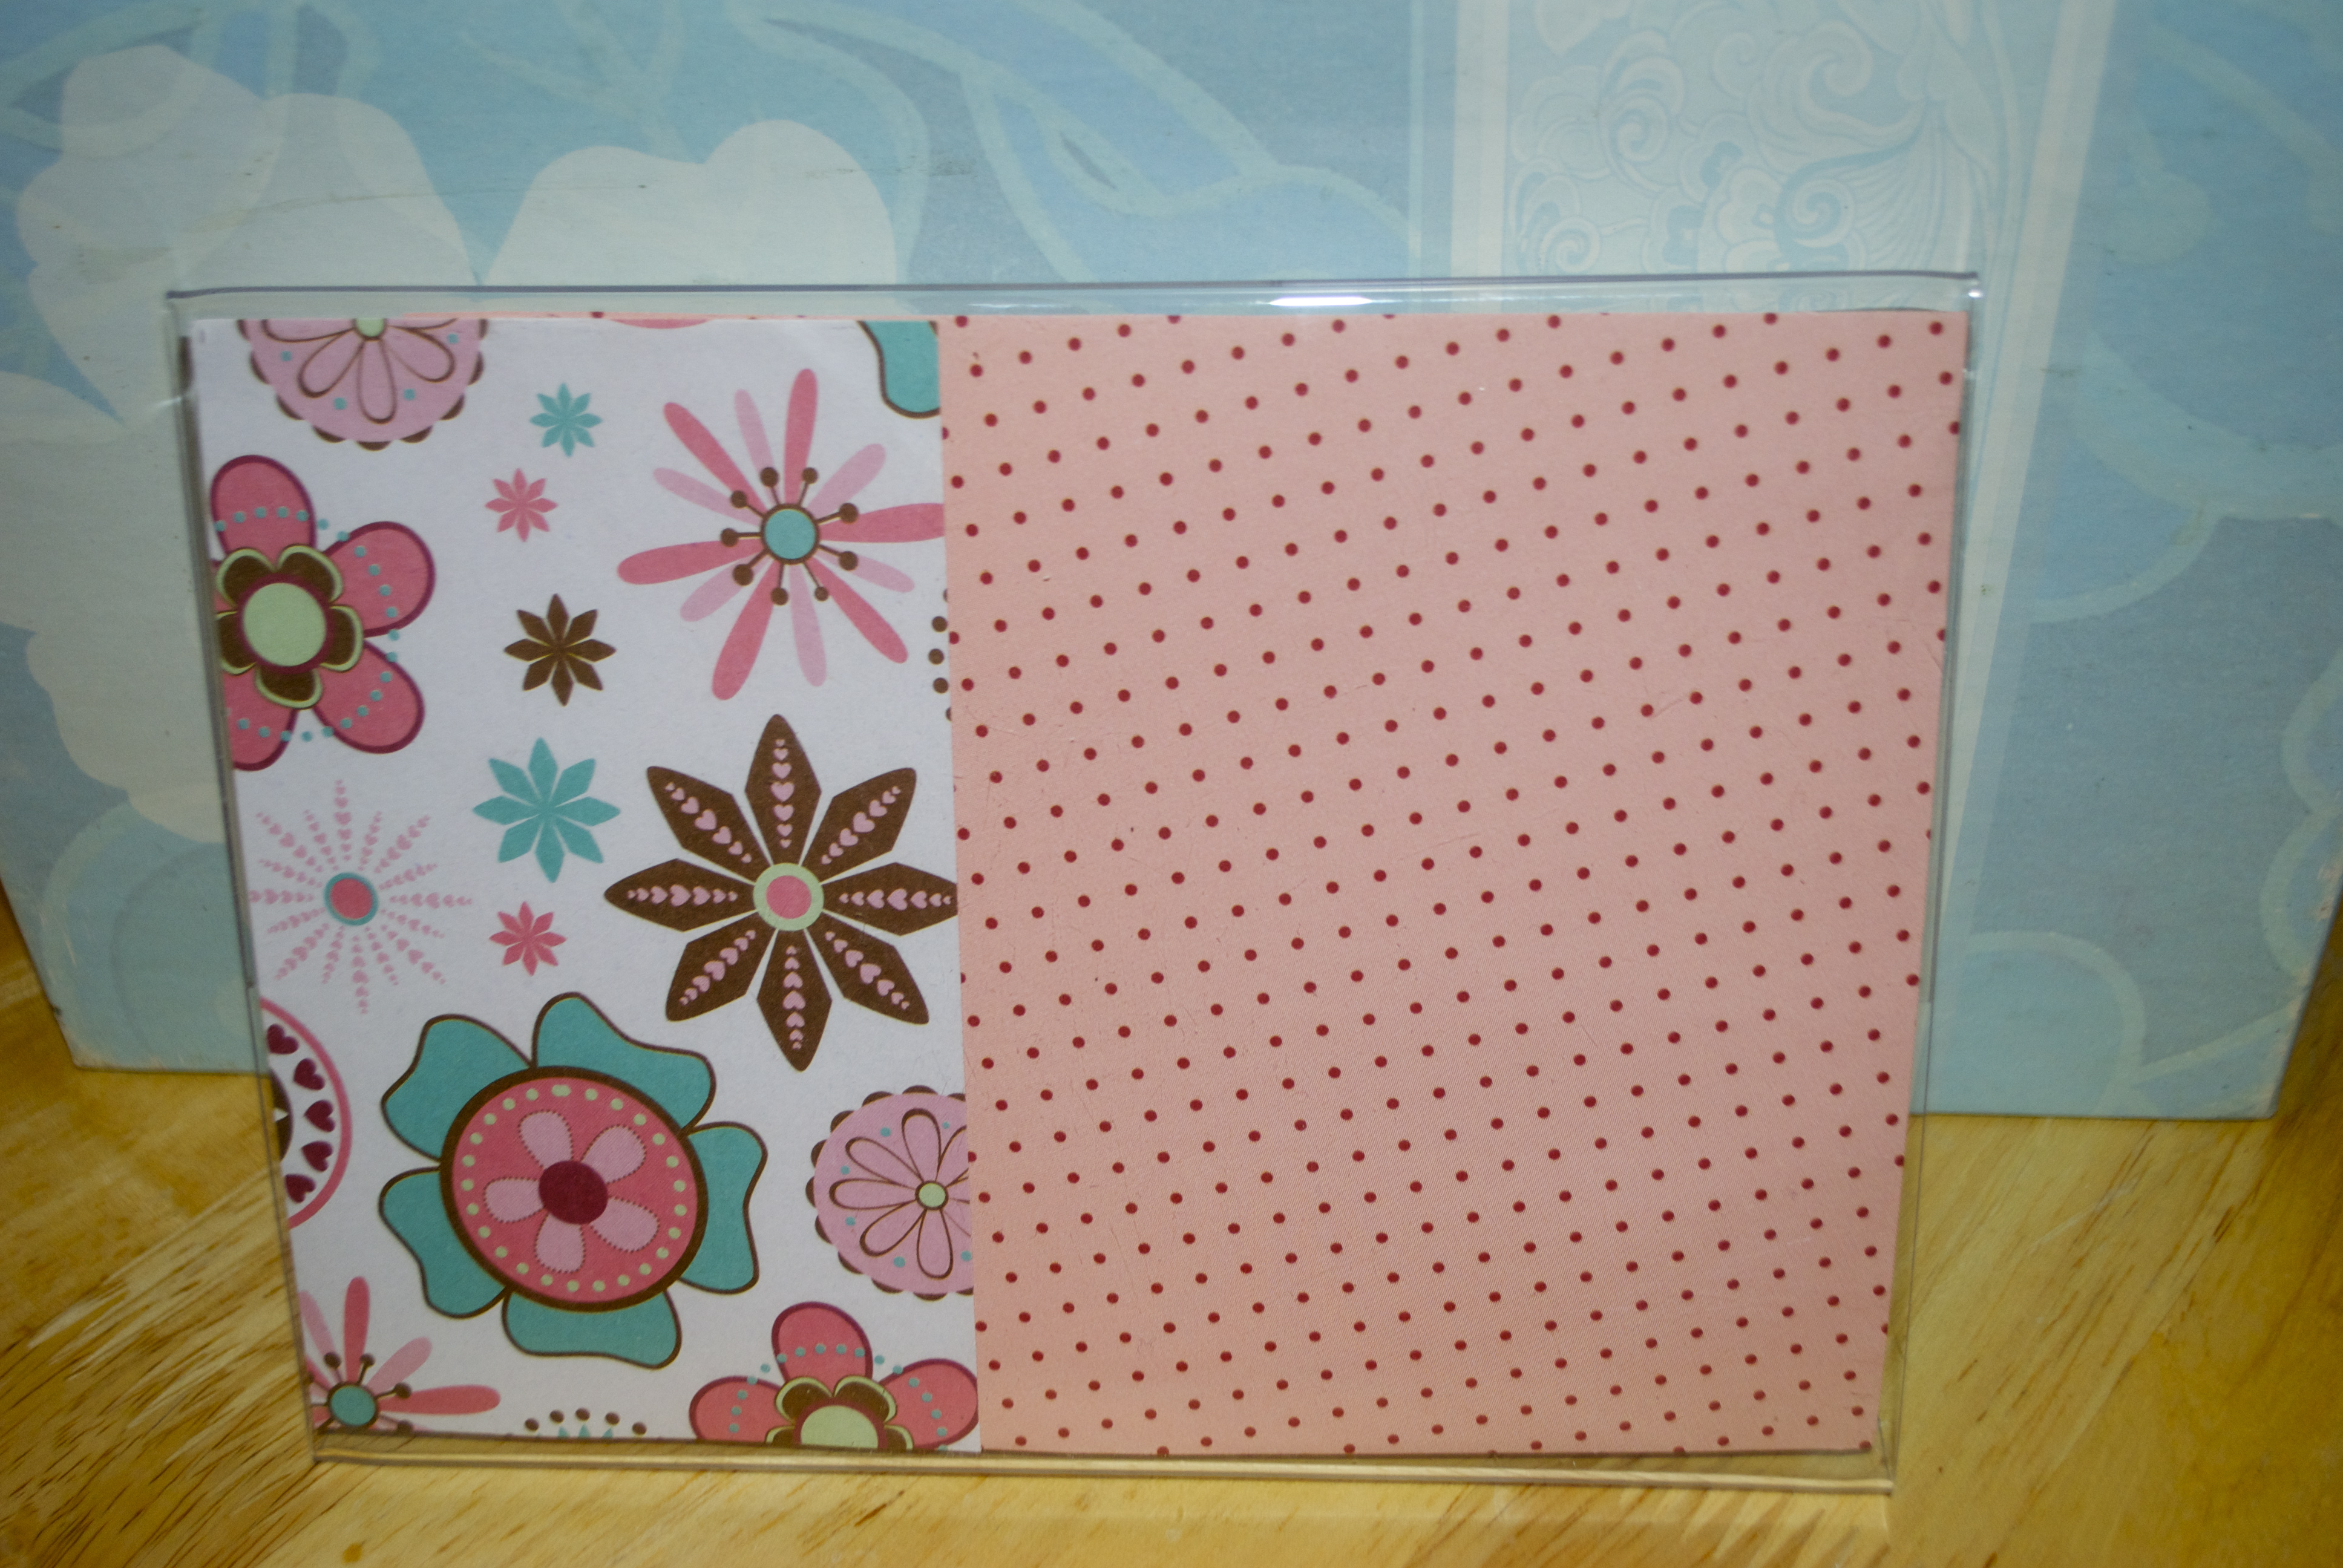 Double sided craft paper - First Thing Is To Trim The Scrapbook Paper To The Right Size I Used The Insert From The Frame As My Guide I Also Decided To Use Two Different Pieces Of